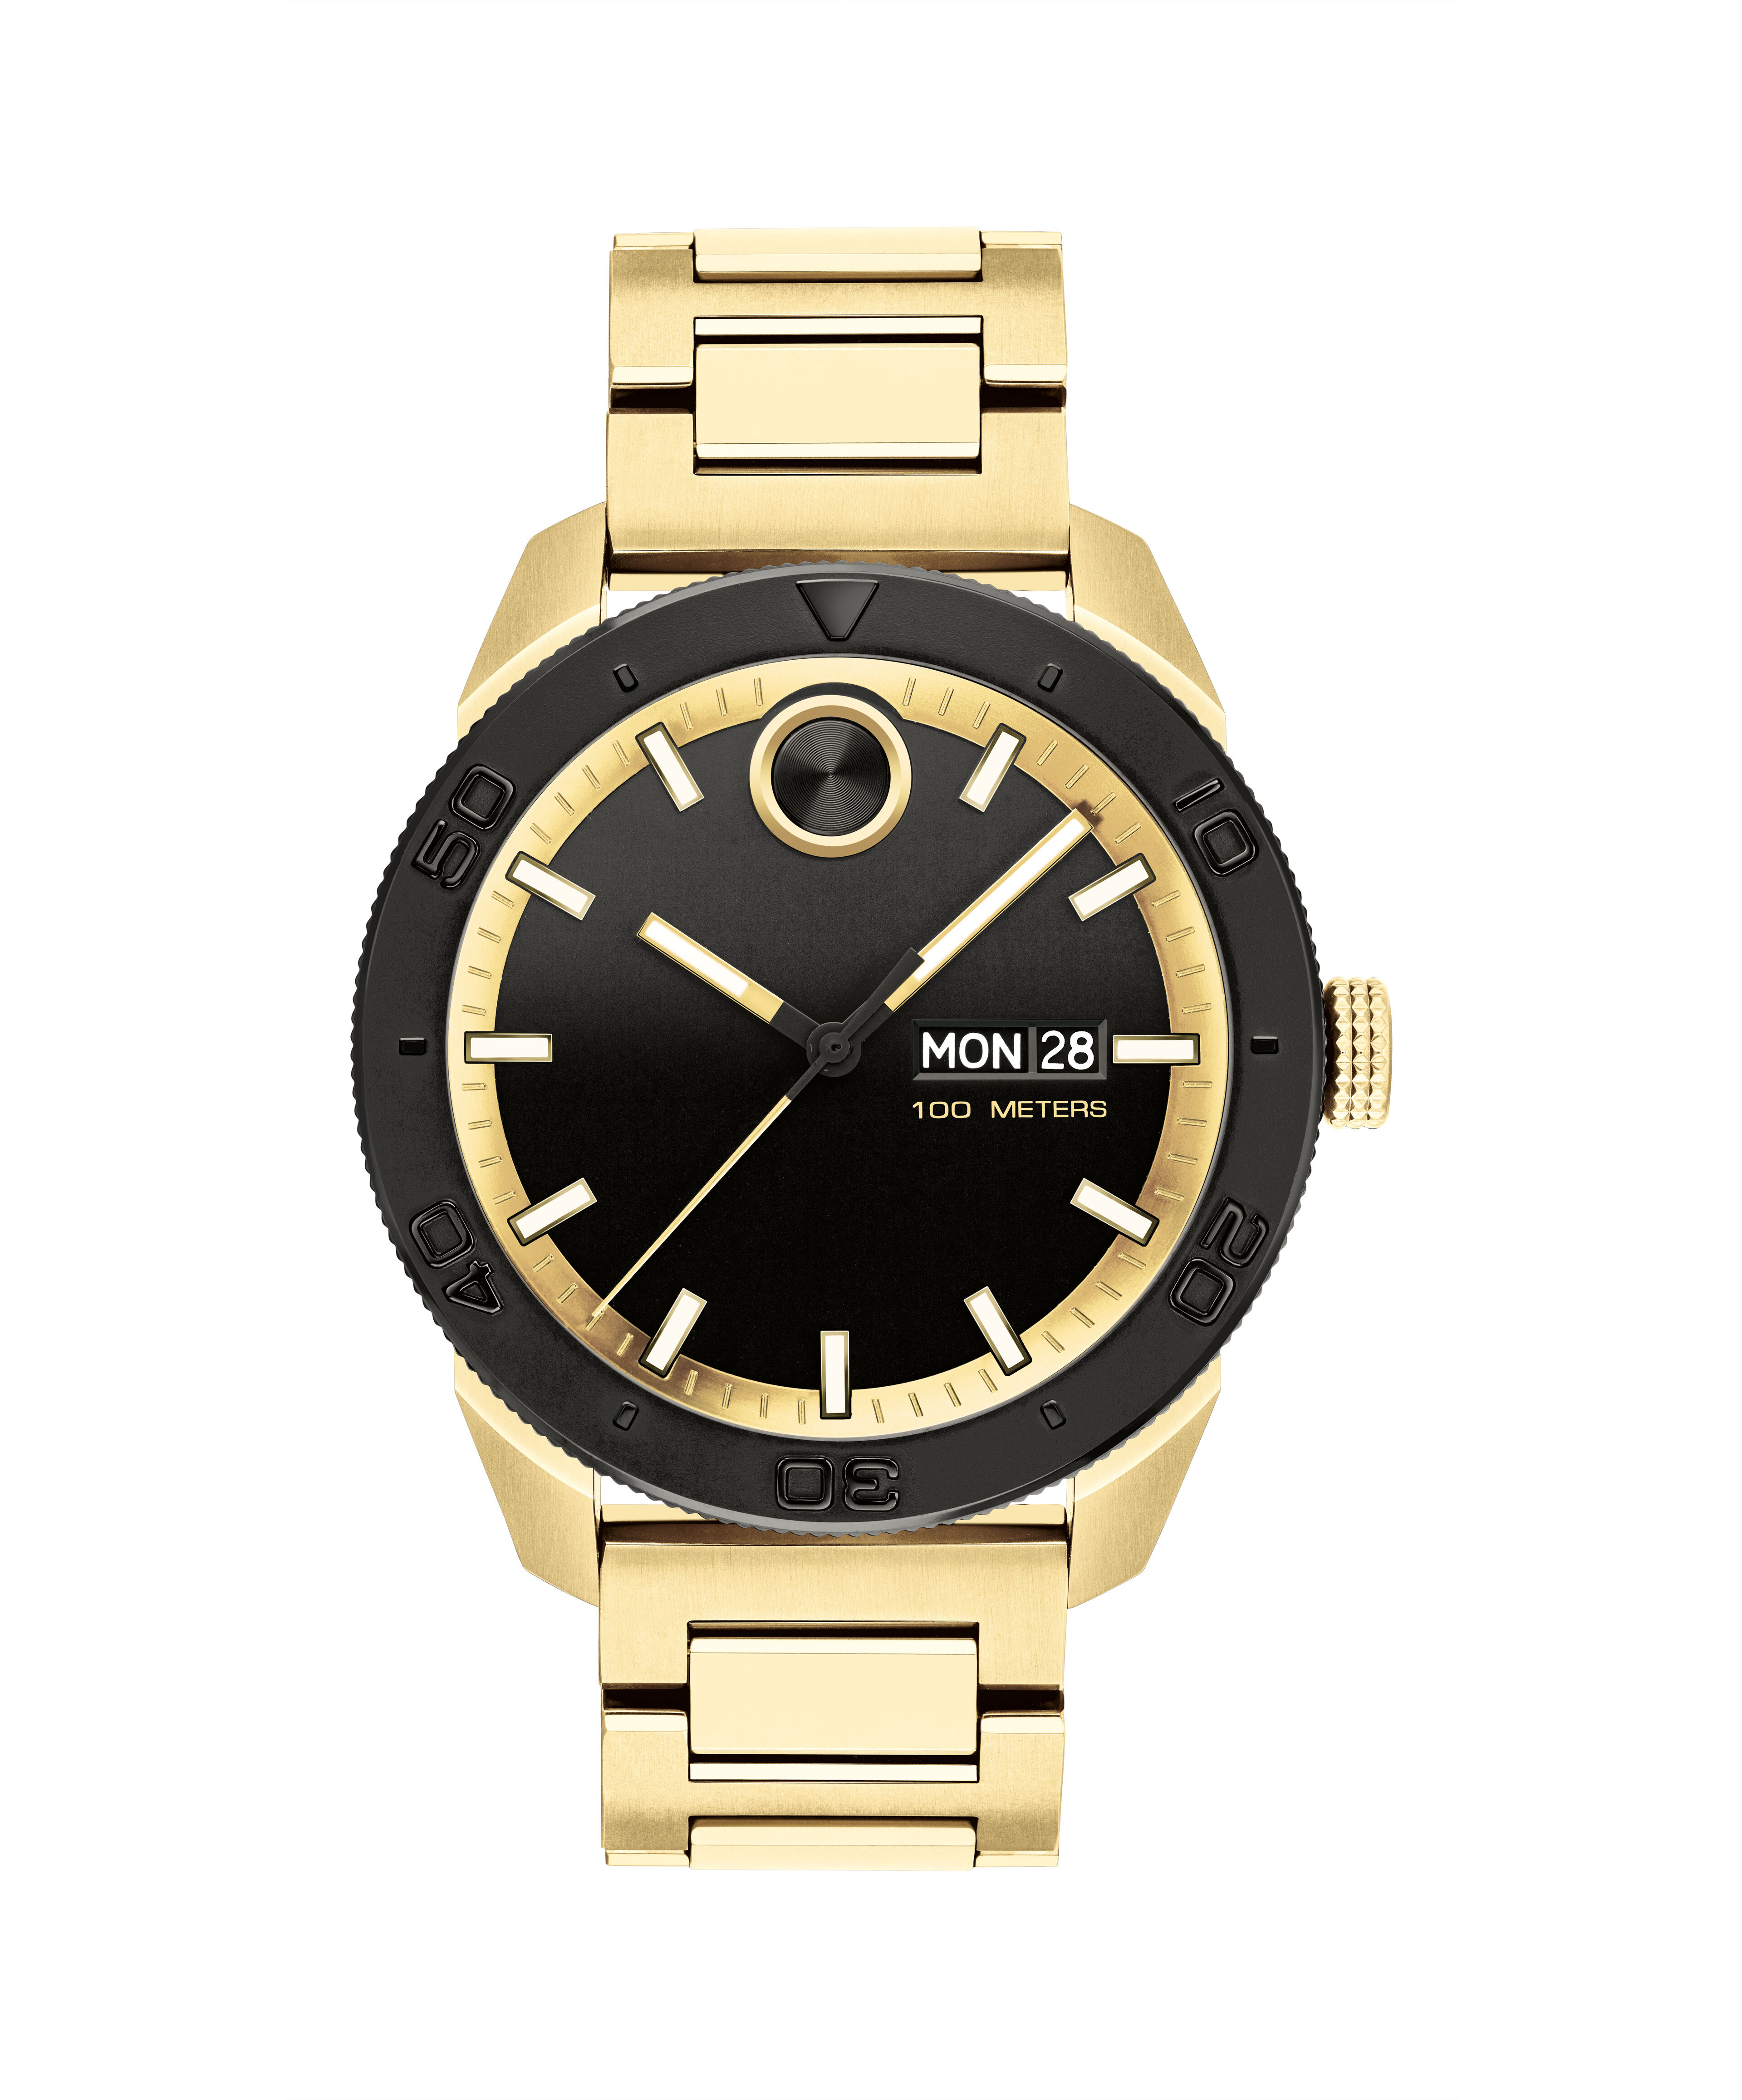 Rolex First Copy Watches In Usa